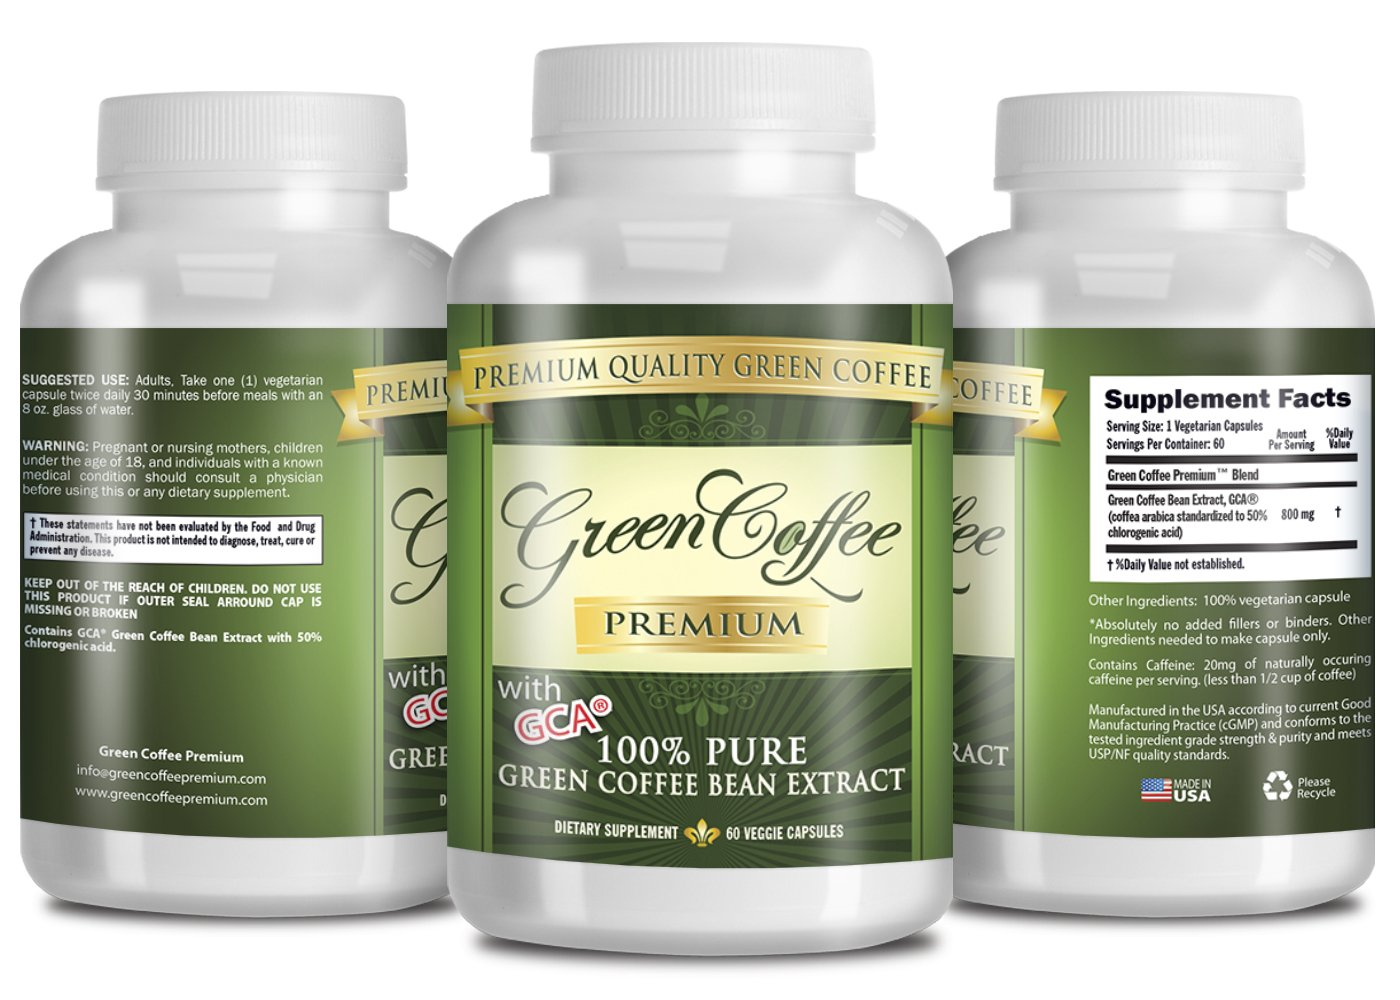 Green Coffee Bean Extract 100% PURE - 50% Chlorogenic Acid - 60 Capsules - Quick Fat Burner by Green Coffee Premium (Image #2)